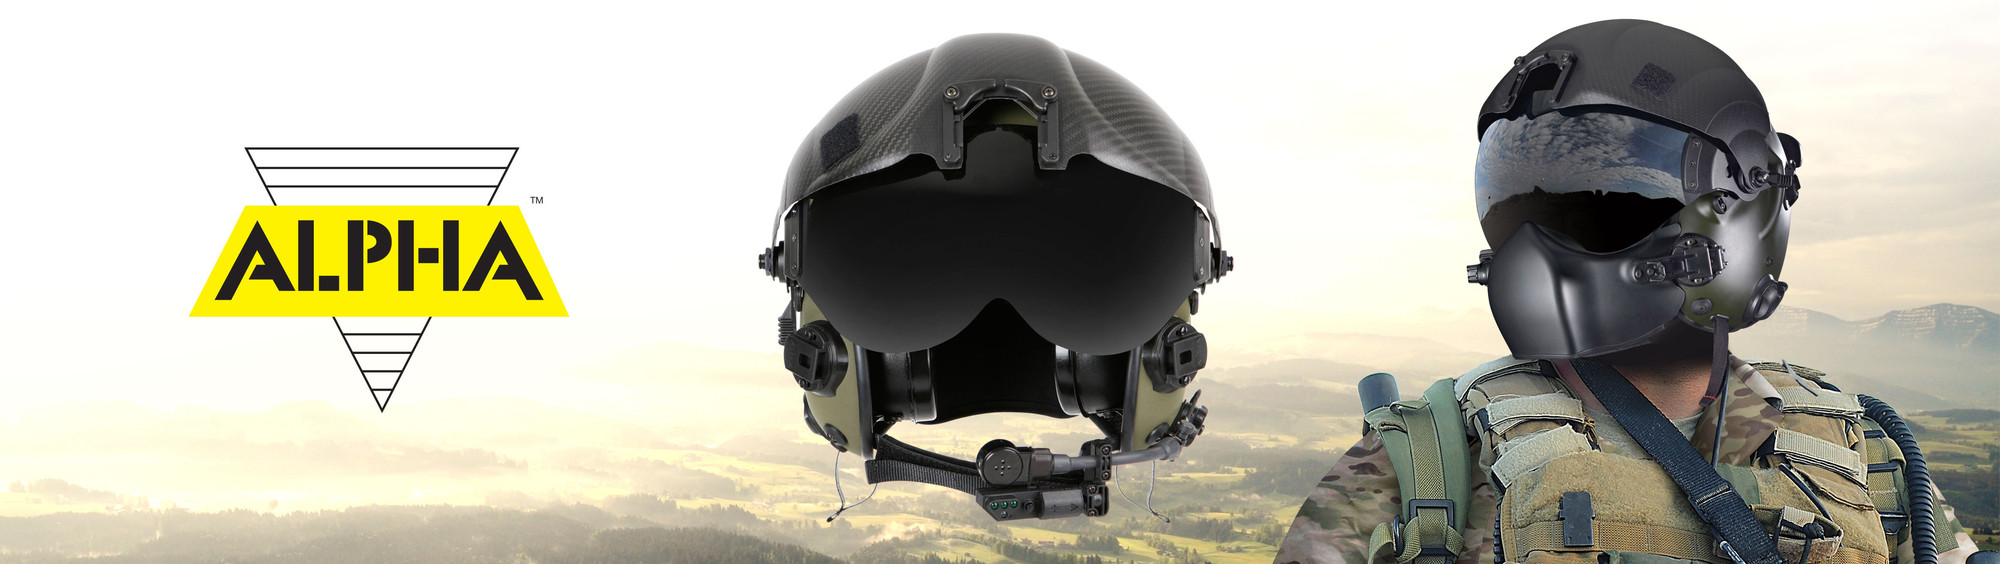 GENTEX CORPORATION HIGHLIGHTS ALPHA 930 AIRCREW HELMET SYSTEM AT PARIS AIR SHOW